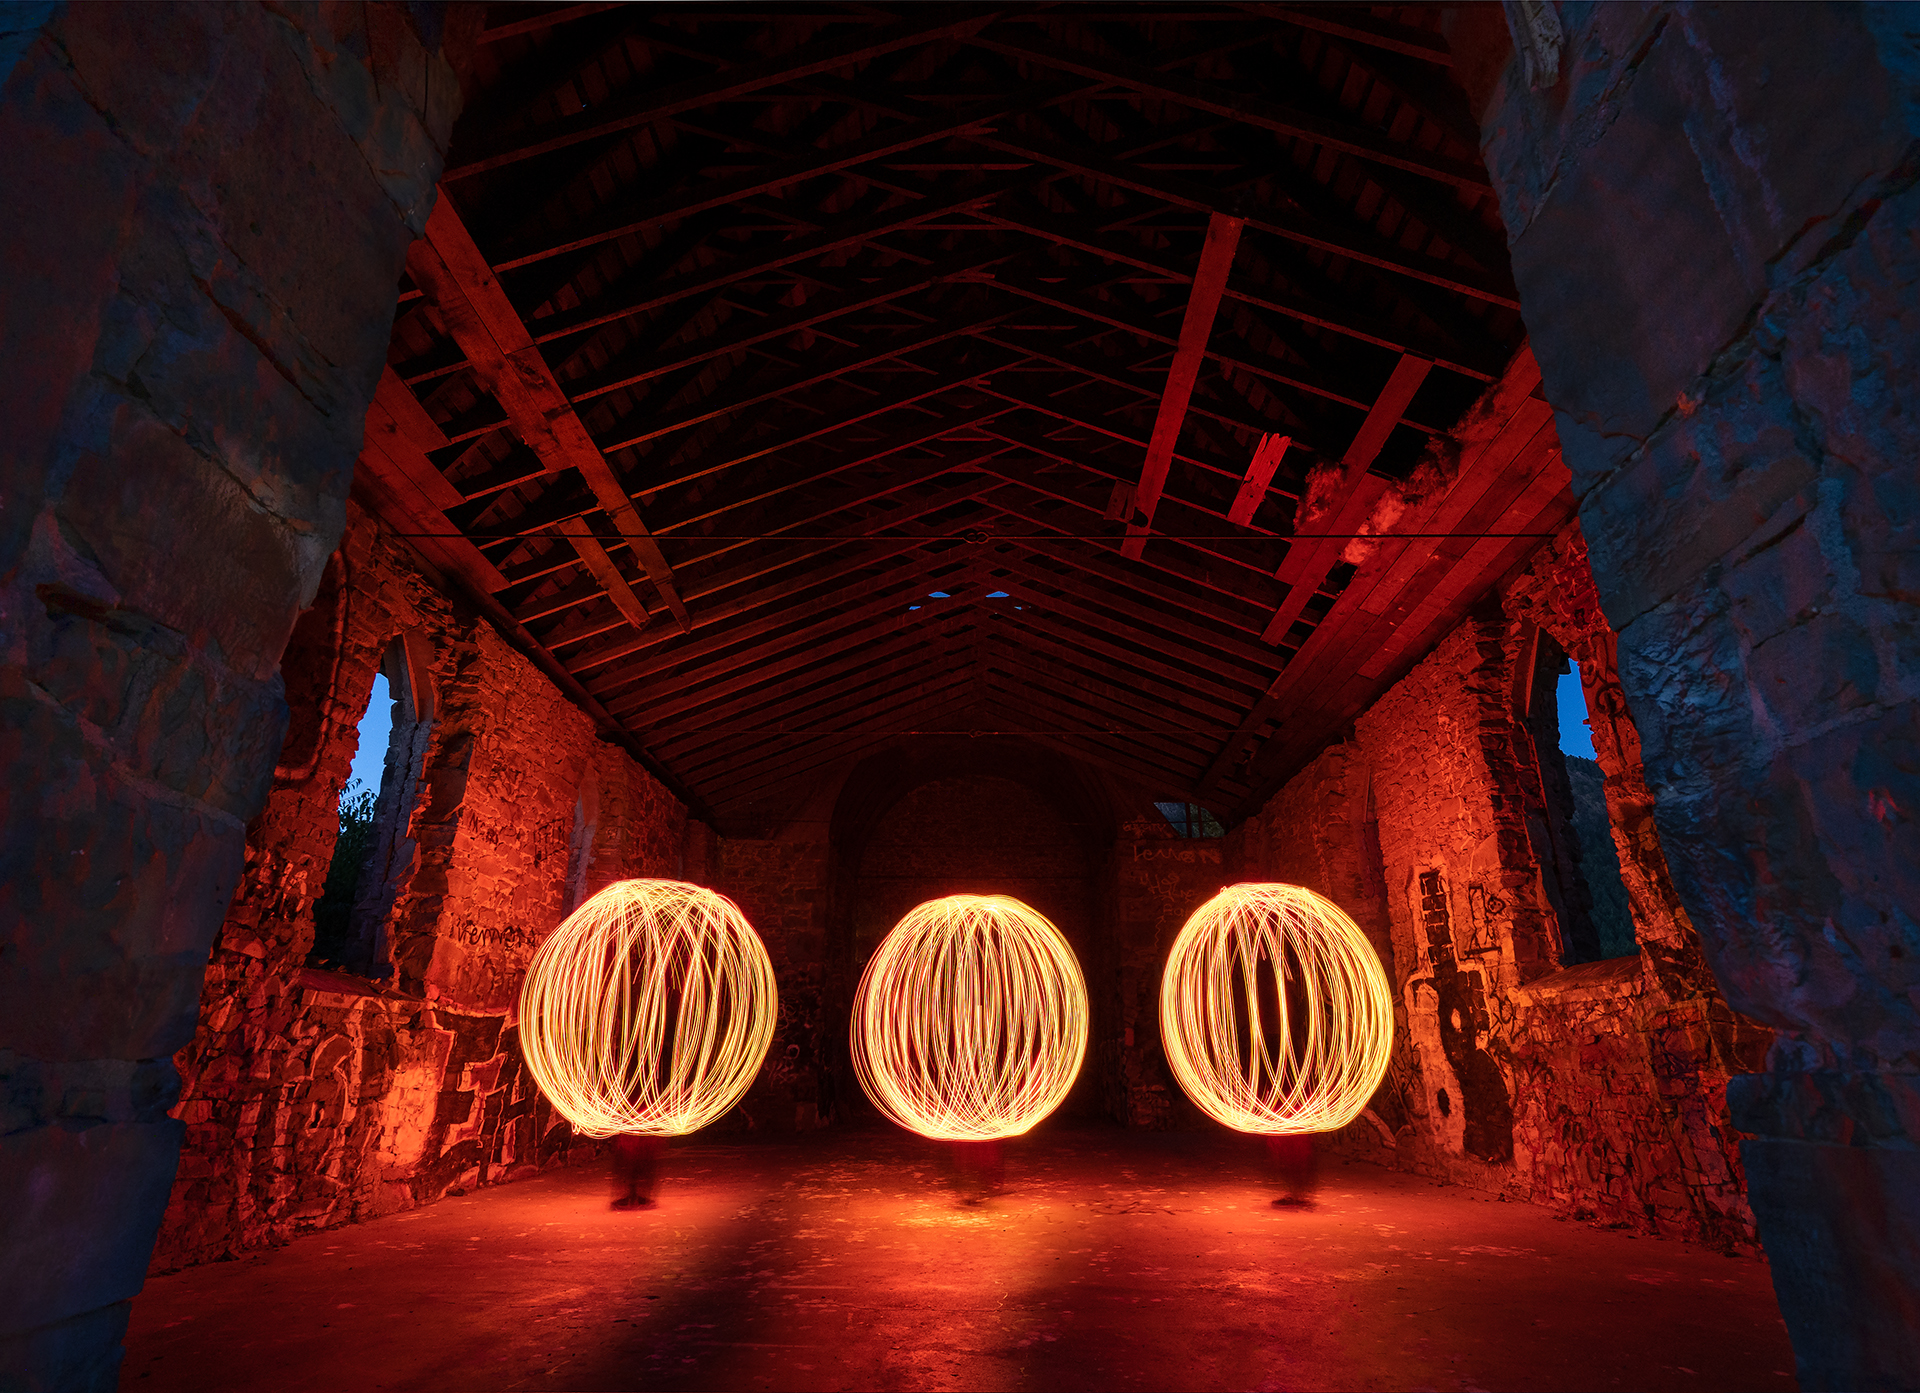 Spinning Orbs in the Butter Church